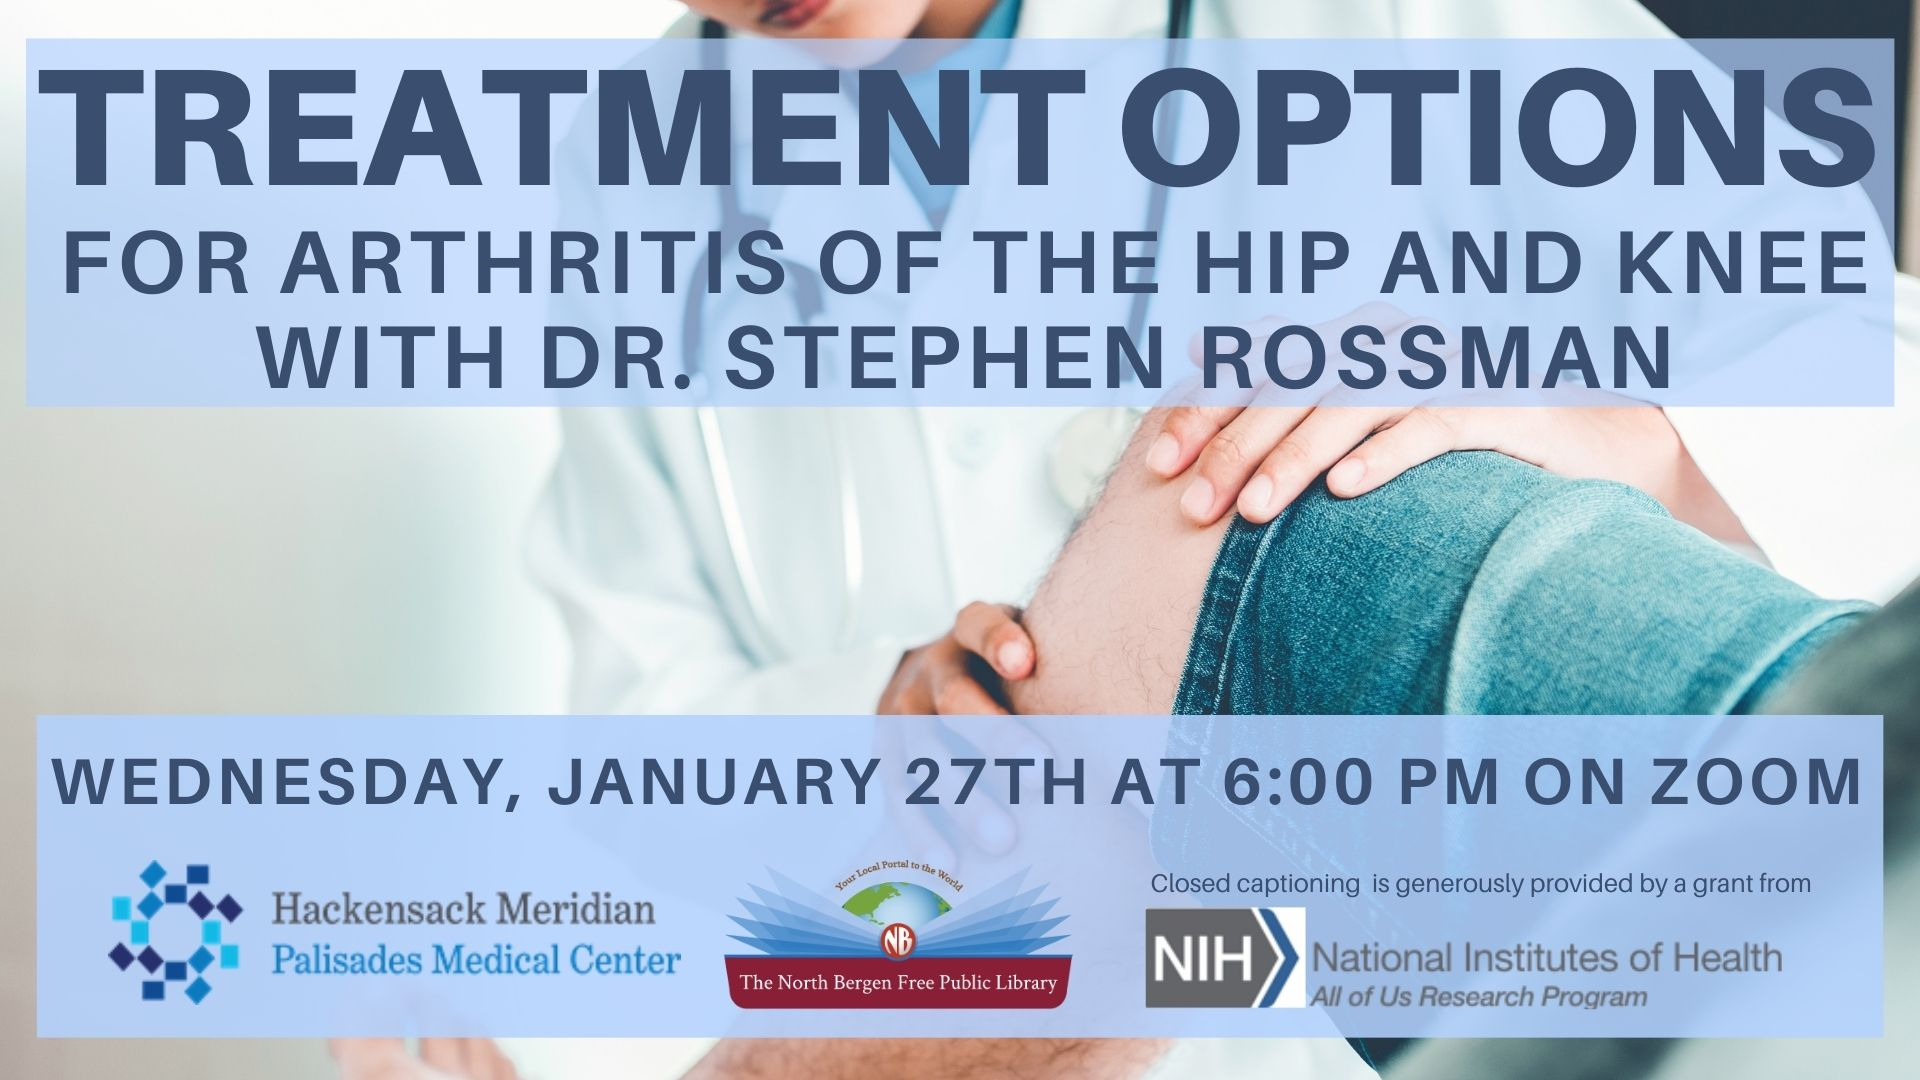 treatment options for arthritis of the hip and knee